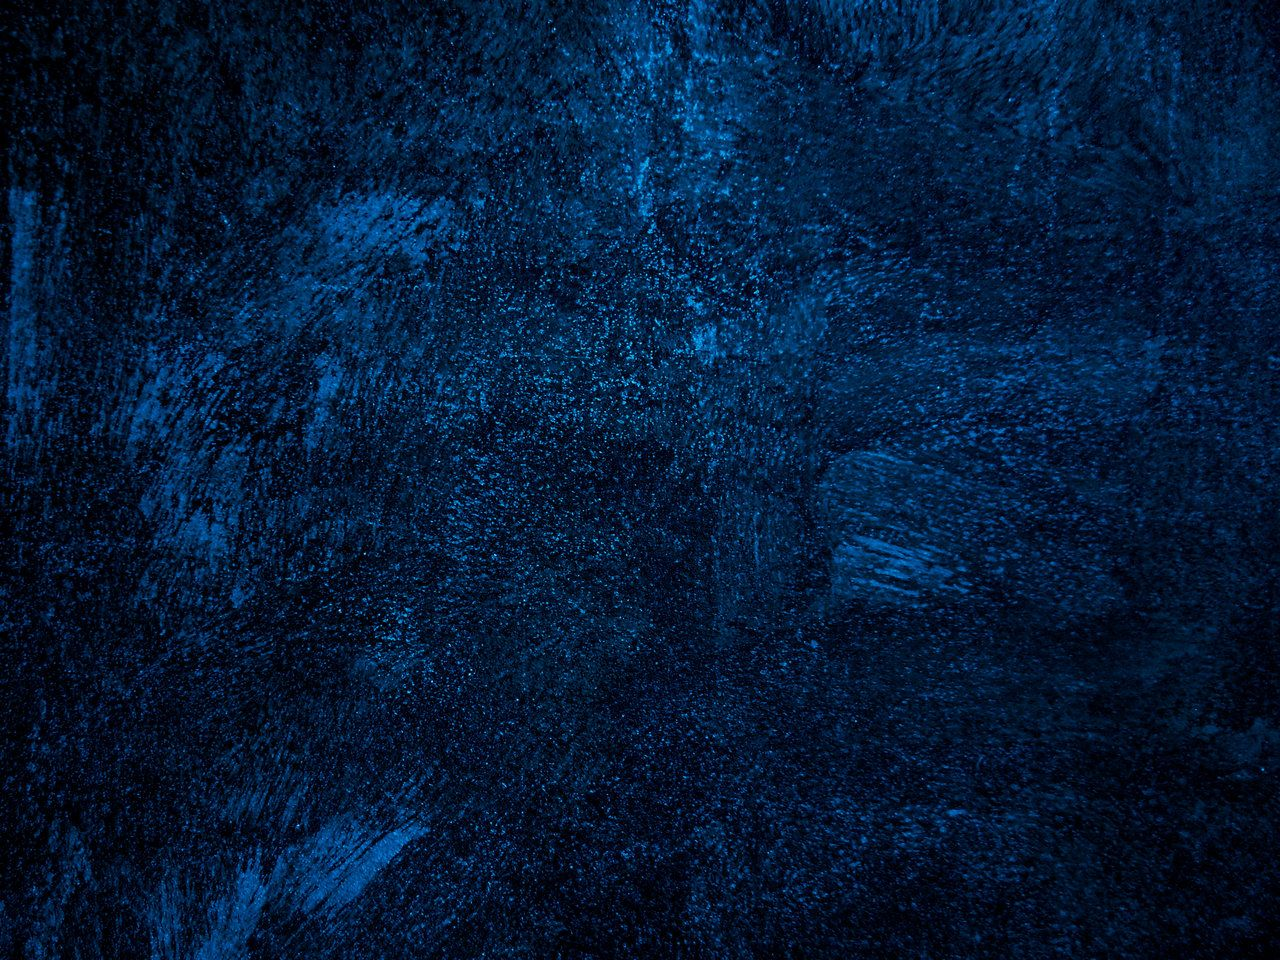 Dark Blue Texture By Carlbert On Deviantart Blue Background Wallpapers Blue Texture Background Blue Colour Wallpaper